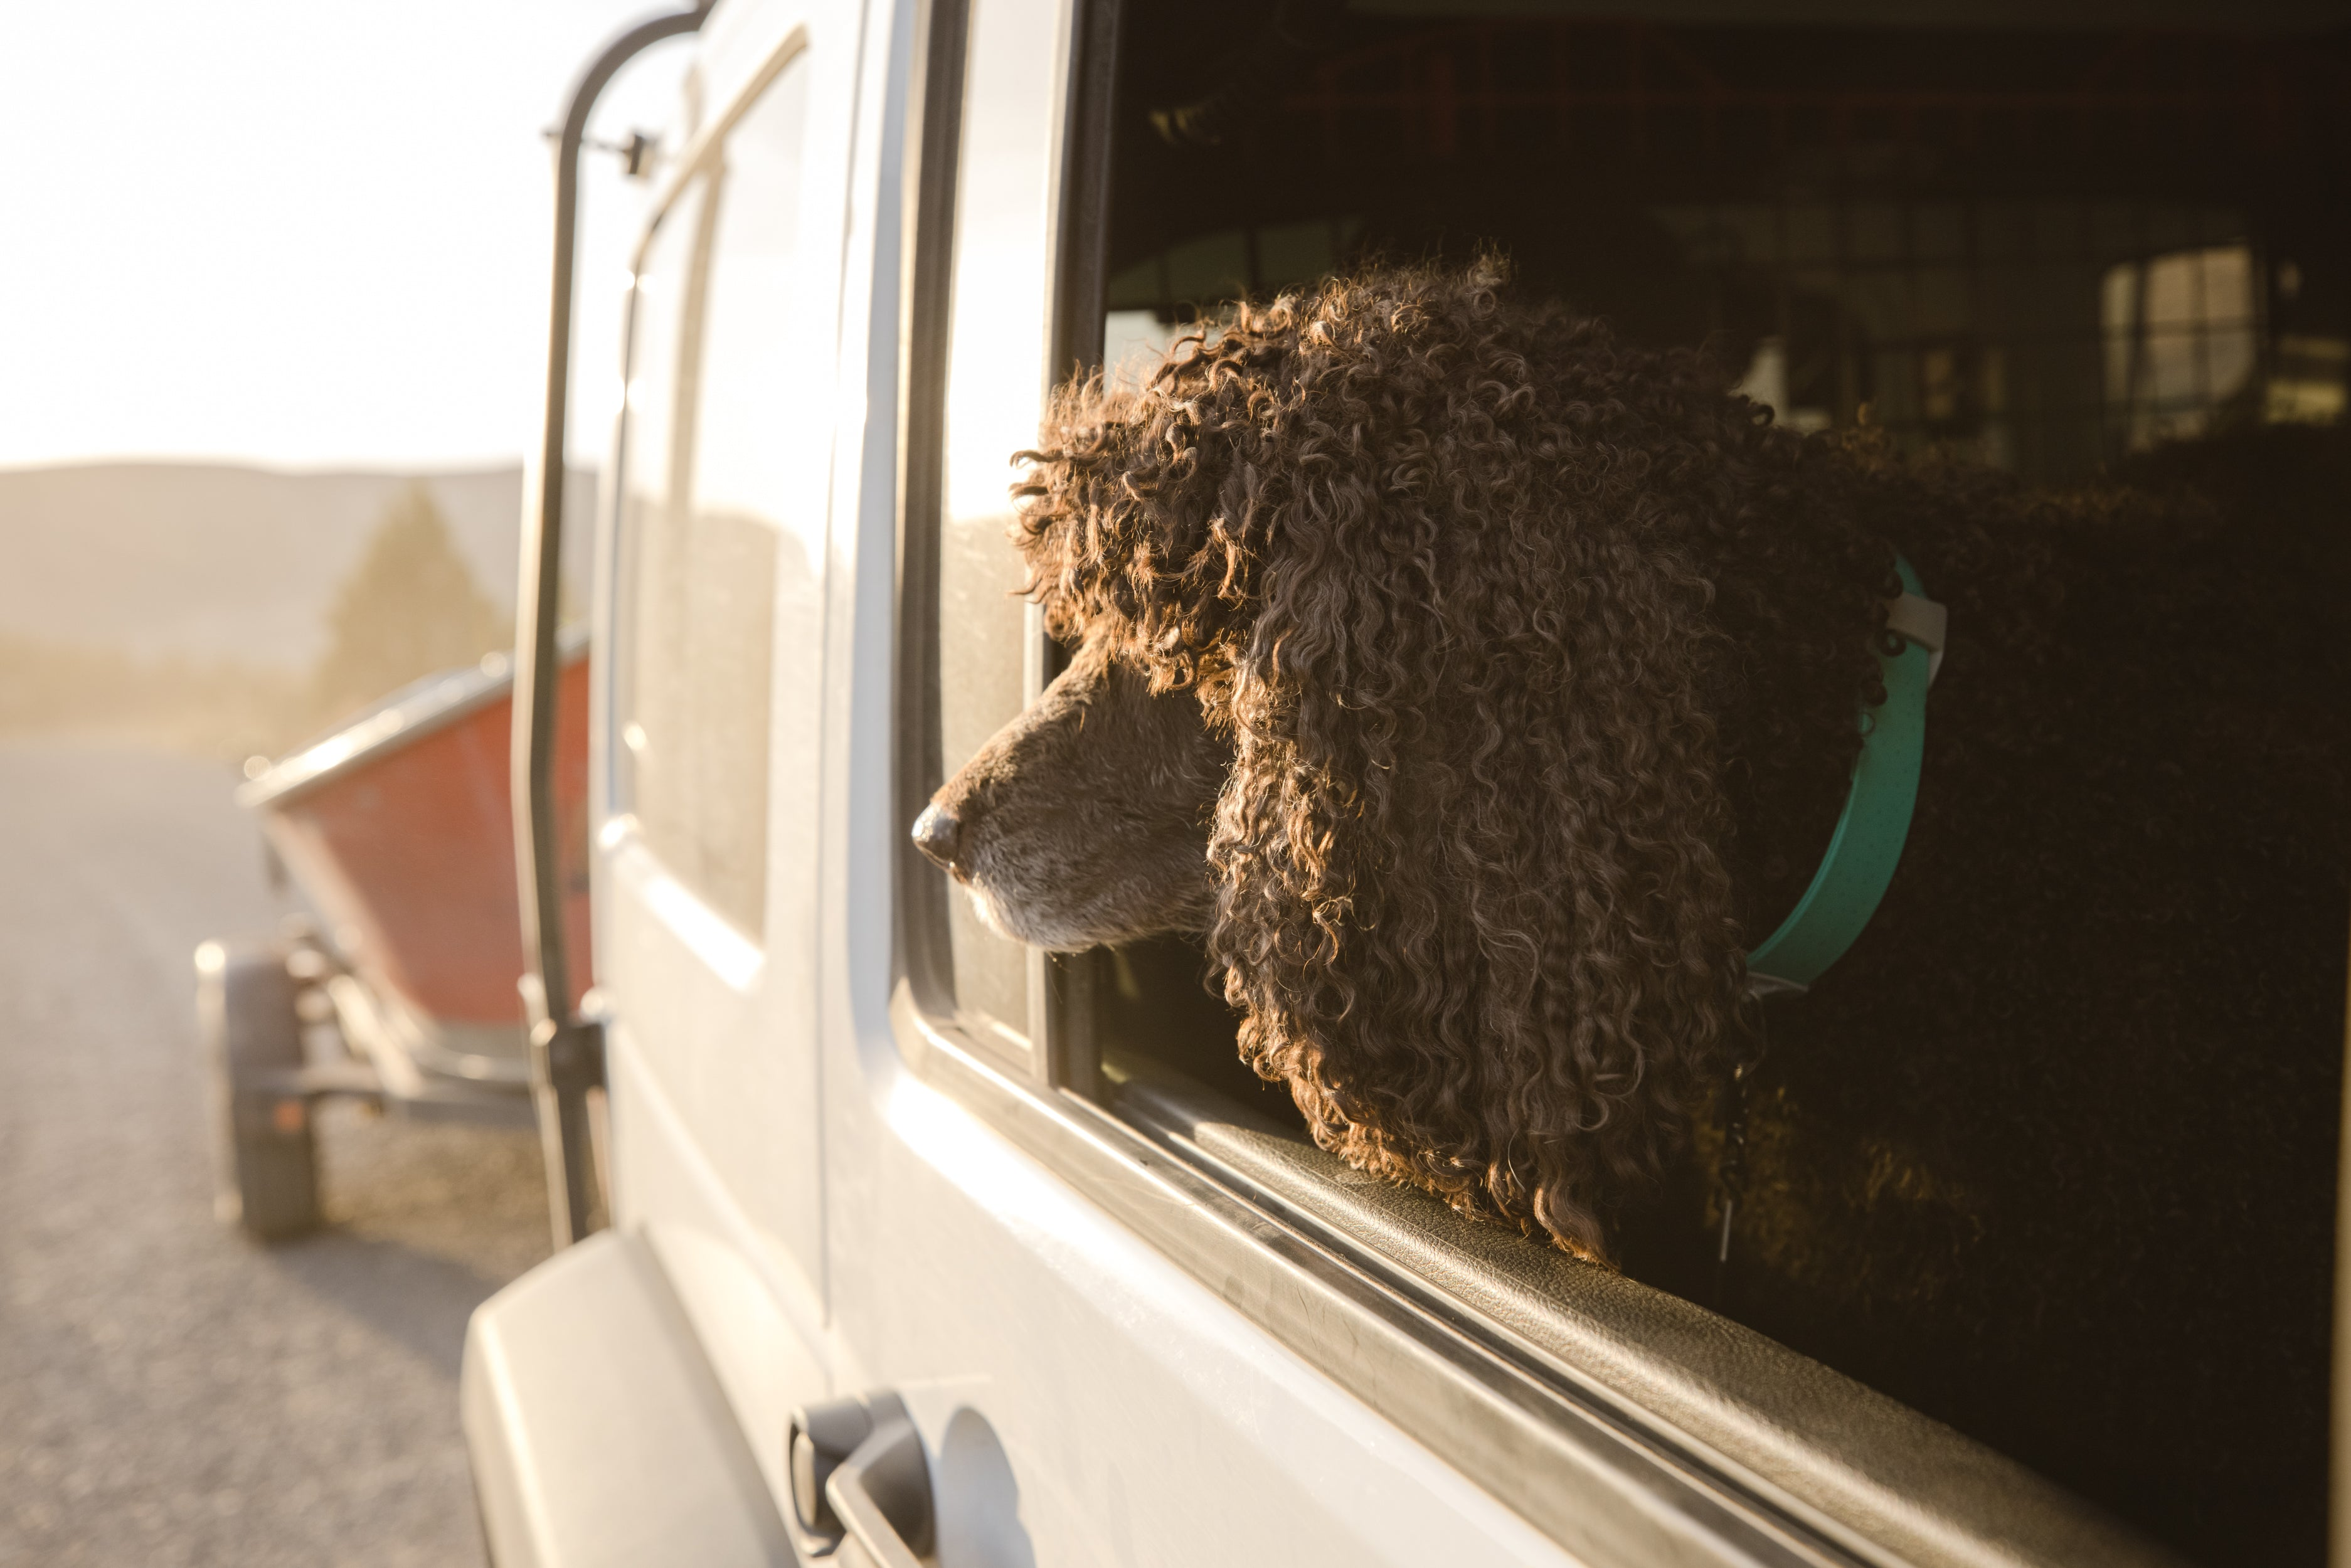 Poodle in confluence waterproof dog collar looks out window of car towing boat on trailer.